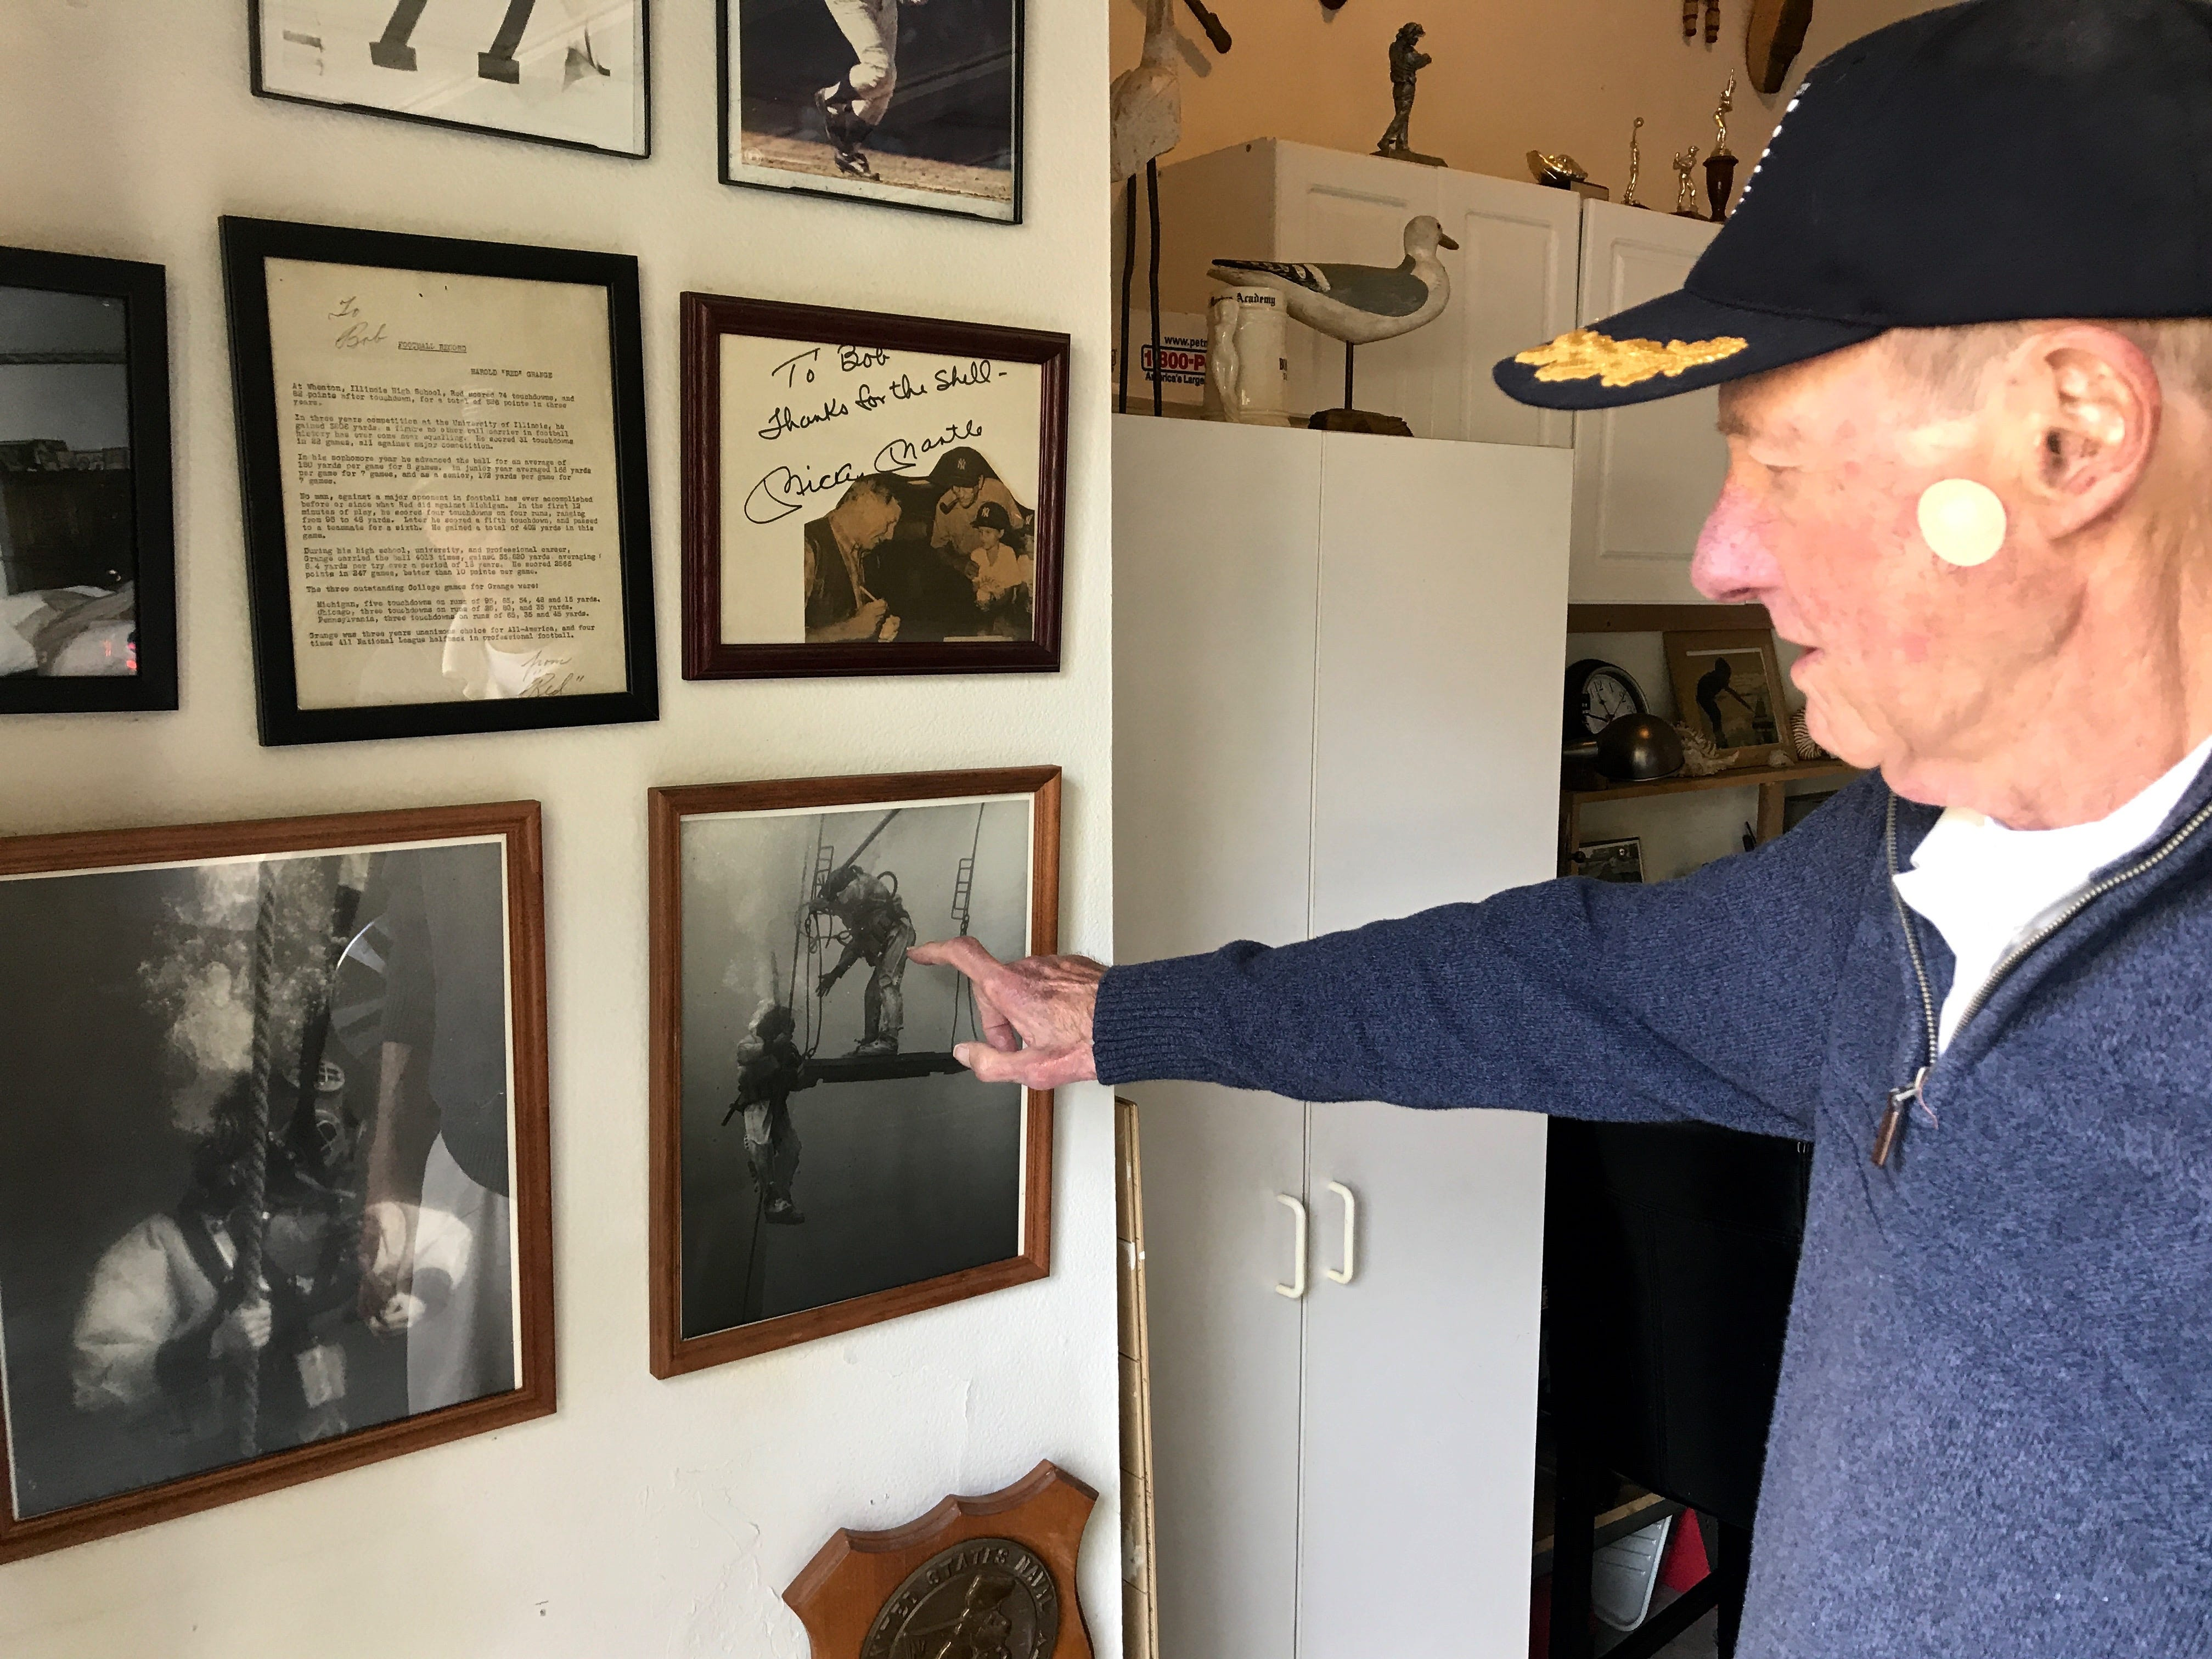 Bob Bornholdt of Camarillo points to photos from his time as an aquanaut in the 1960s Sealab program.